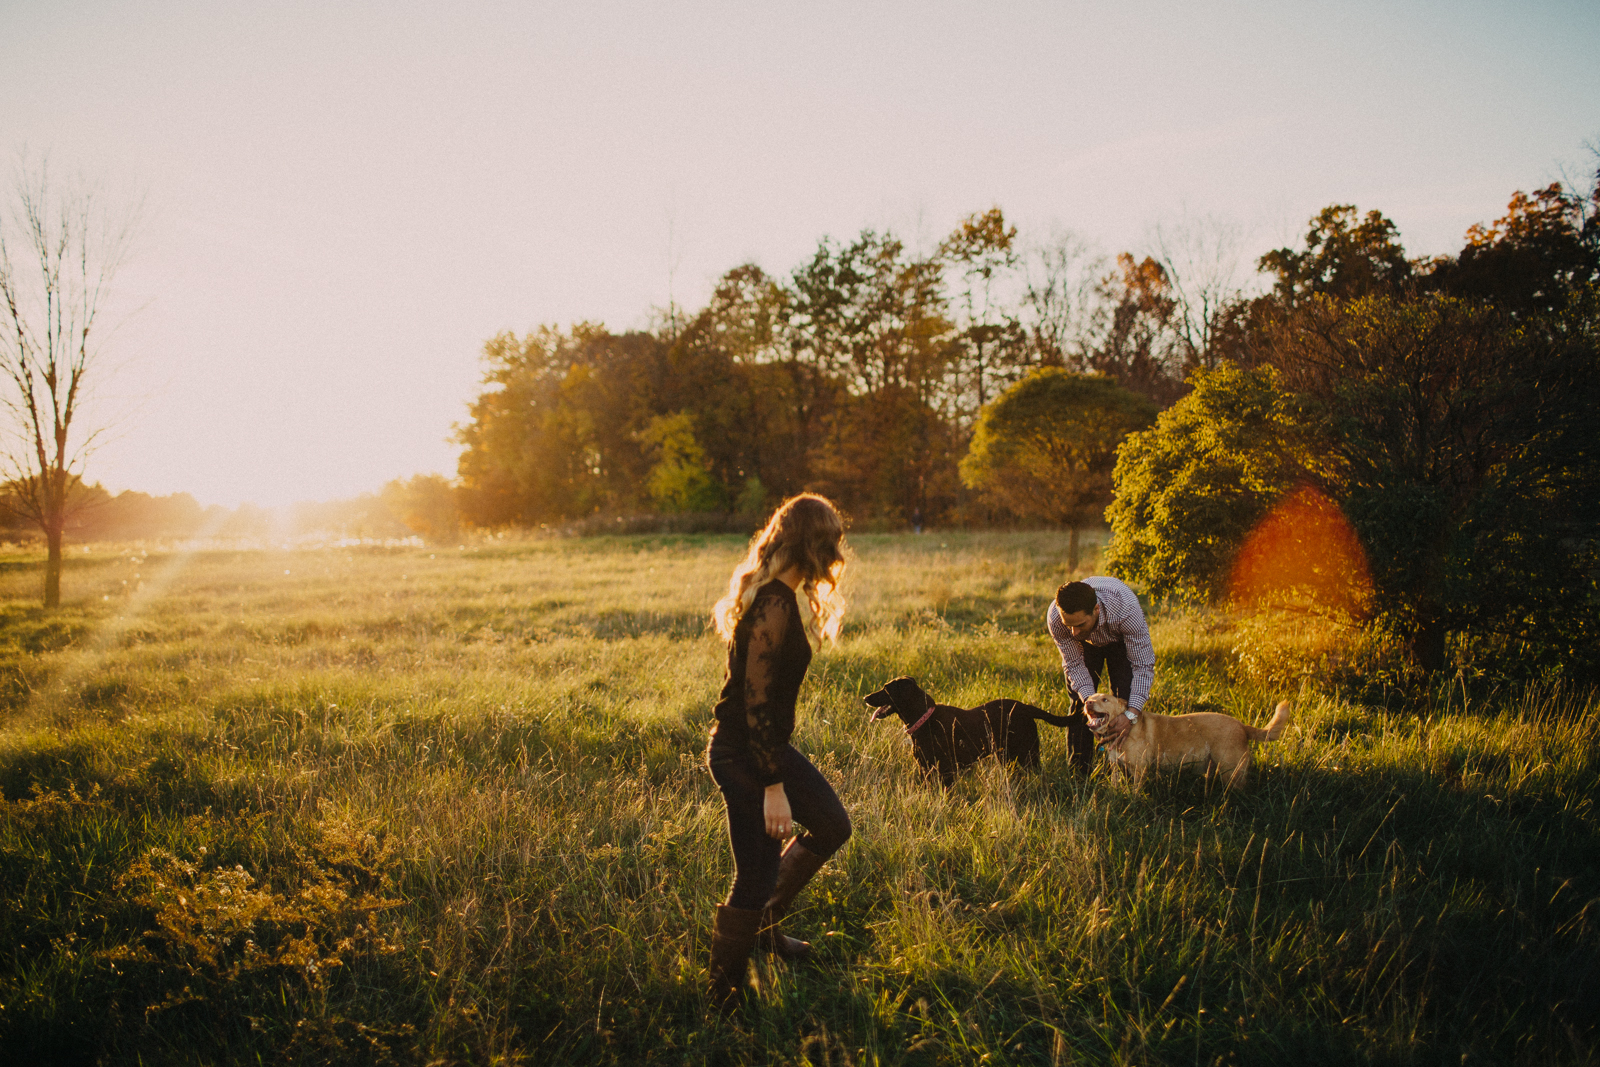 matea state park indiana fort wayne engagement session sarah cusson photography-37.jpg